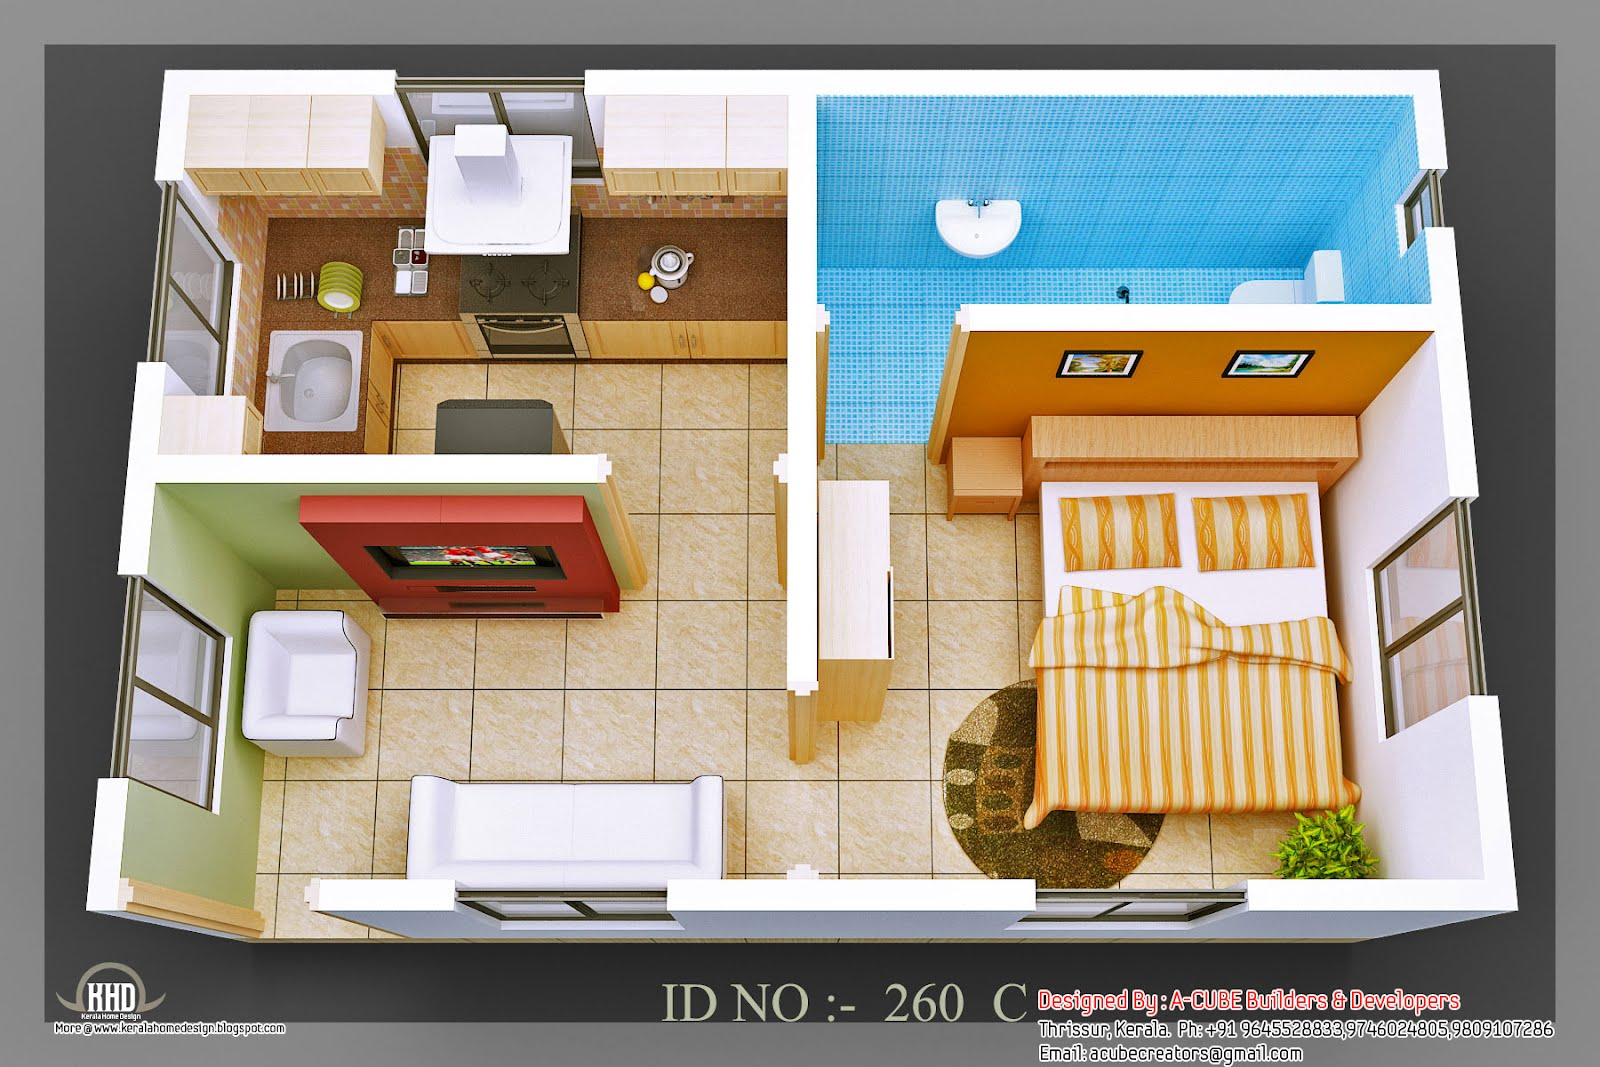 3d isometric views of small house plans indian home decor Home designer 3d